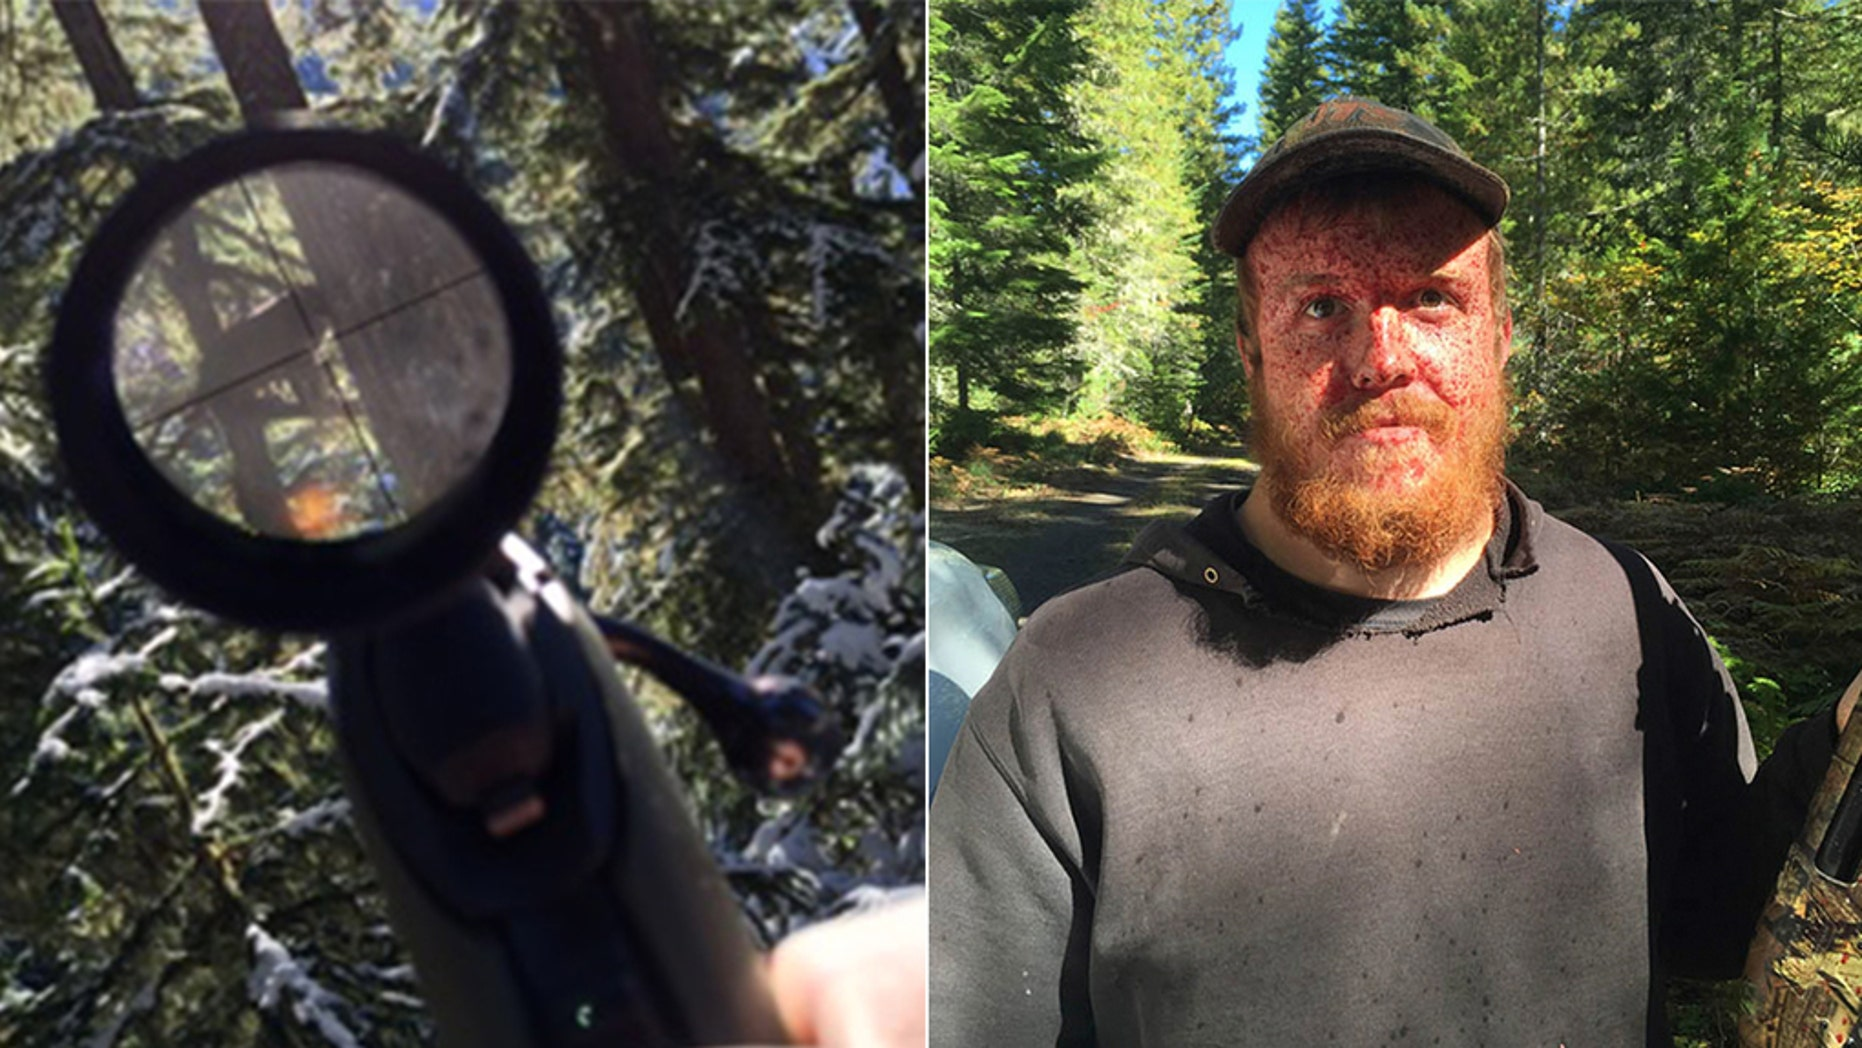 William Haynes is pictured on the right with a camouflaged shotgun he allegedly used to kill bears, according to The Seattle Times.